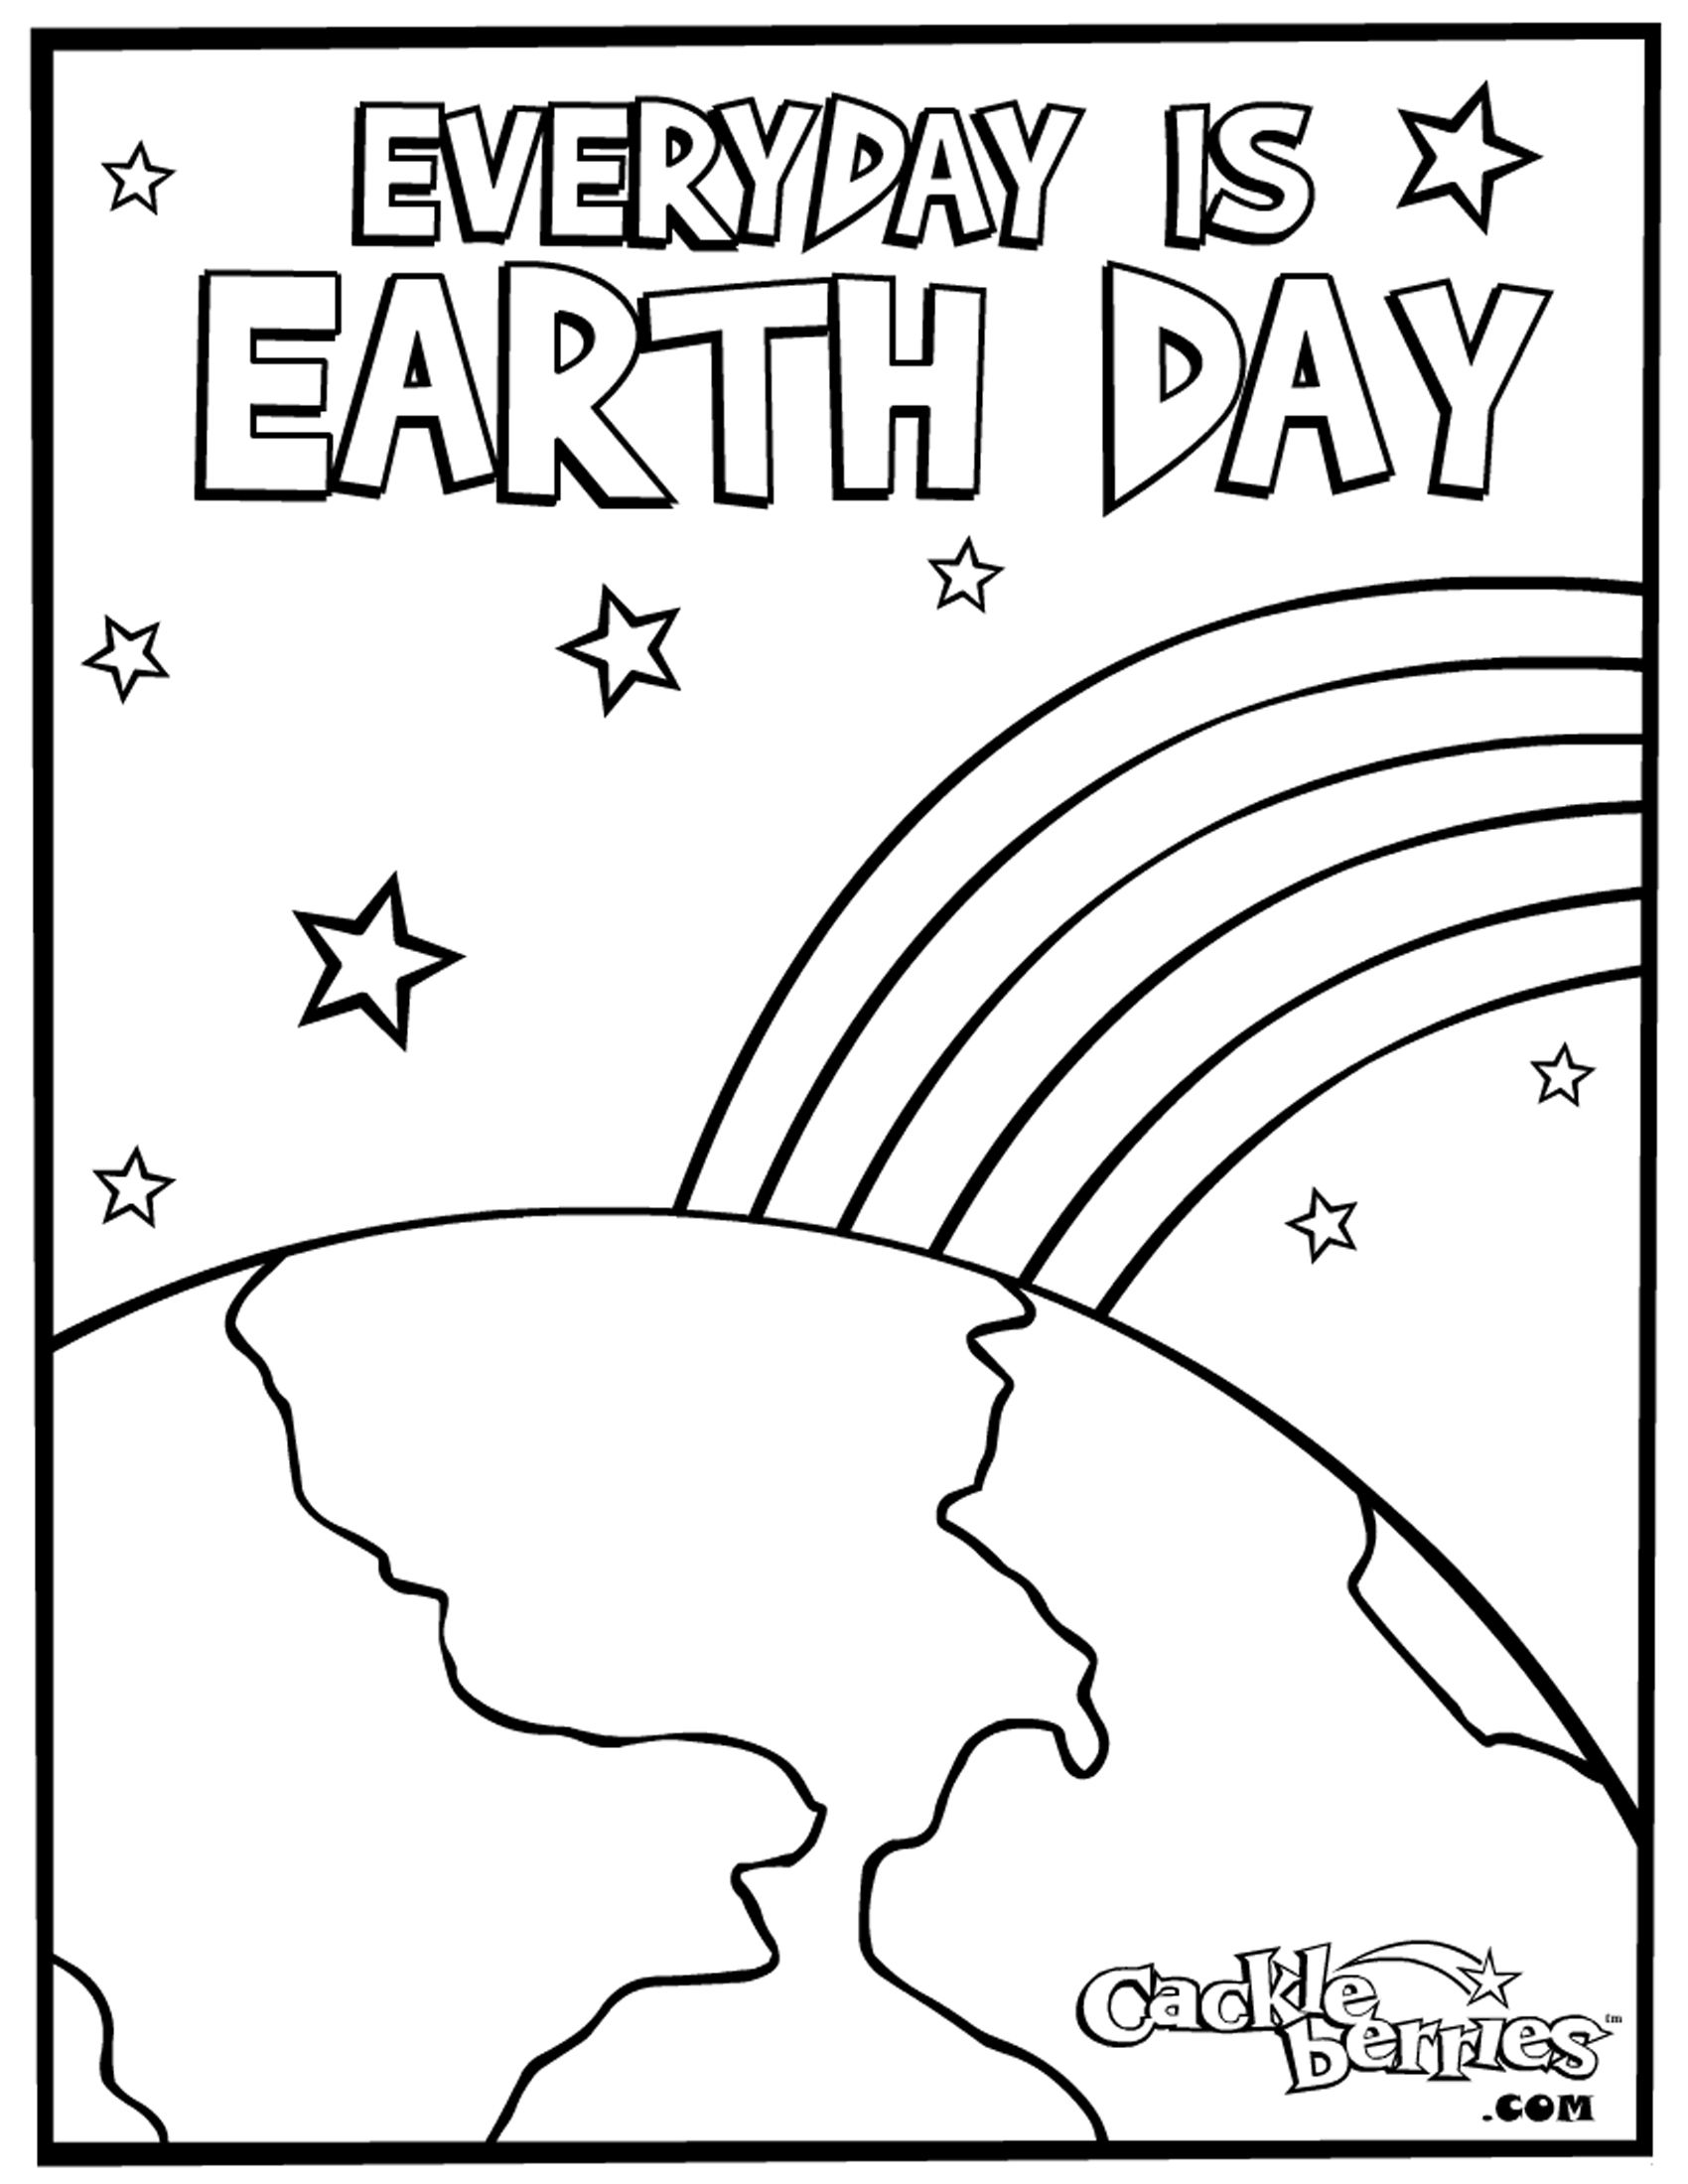 Earth day coloring sheets - Earth Day Coloring Sheets Pesquisa Do Google